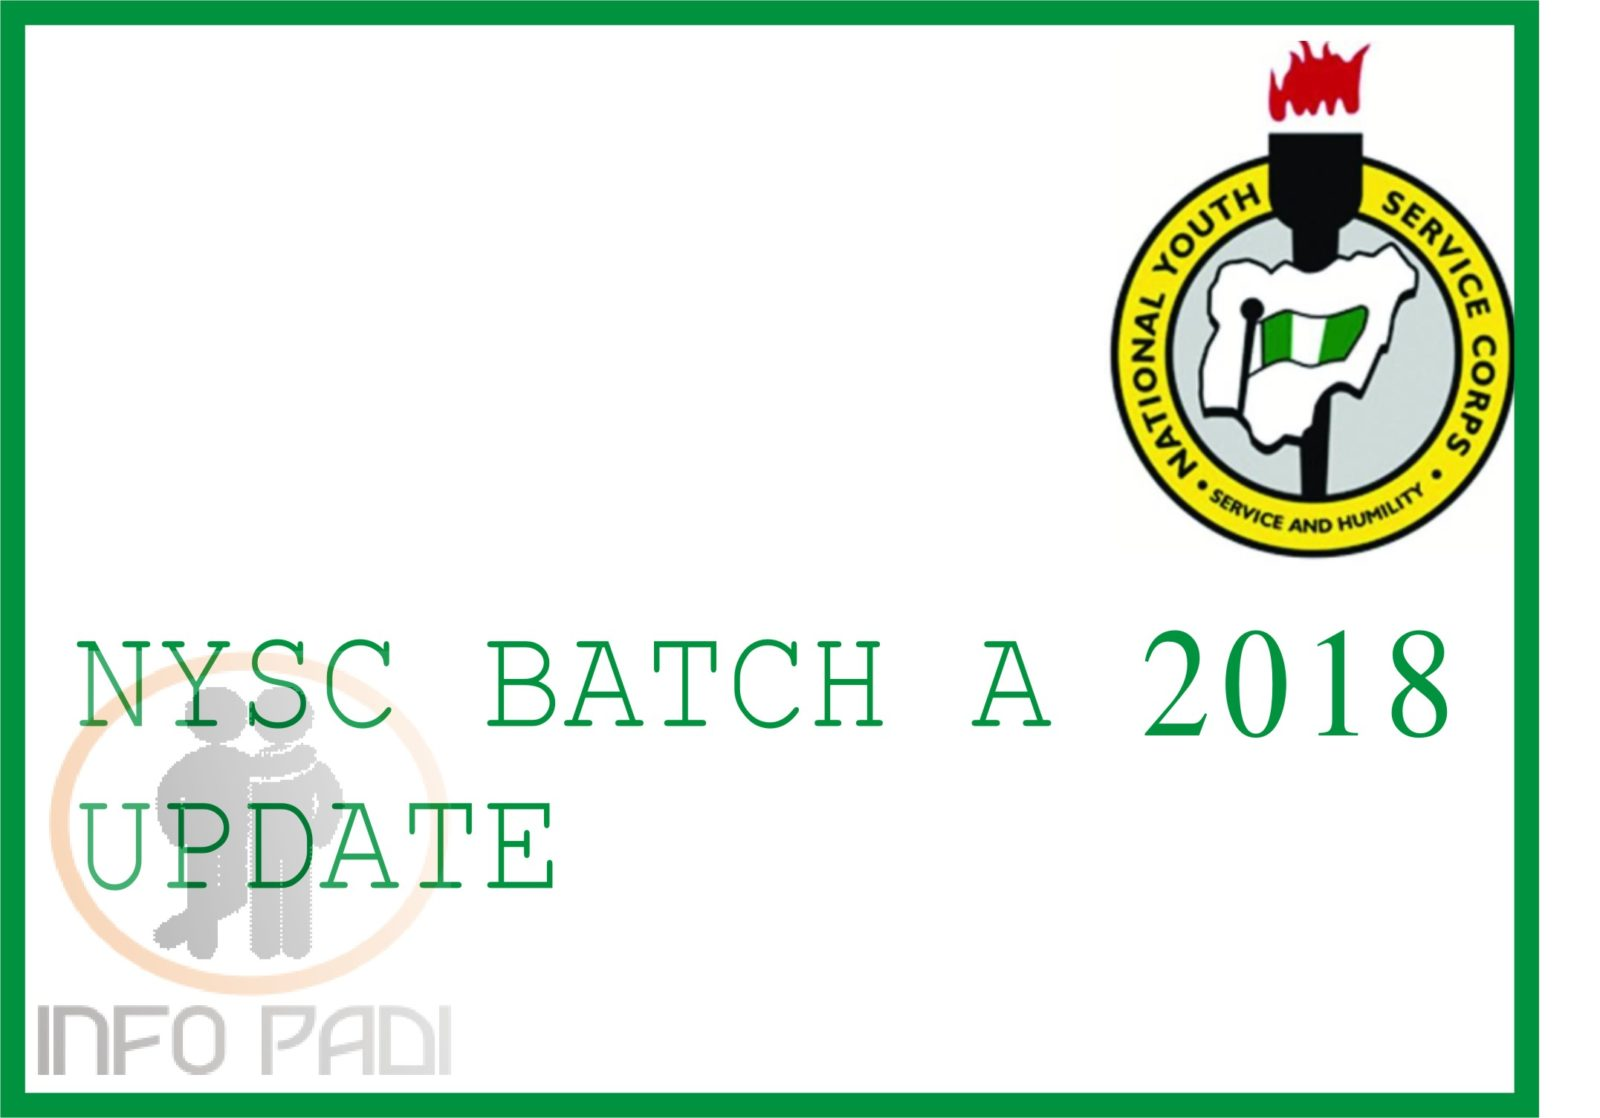 NYSC 2019 Batch A Stream 1 and Stream 2 important update- www.nysc.gov.ng